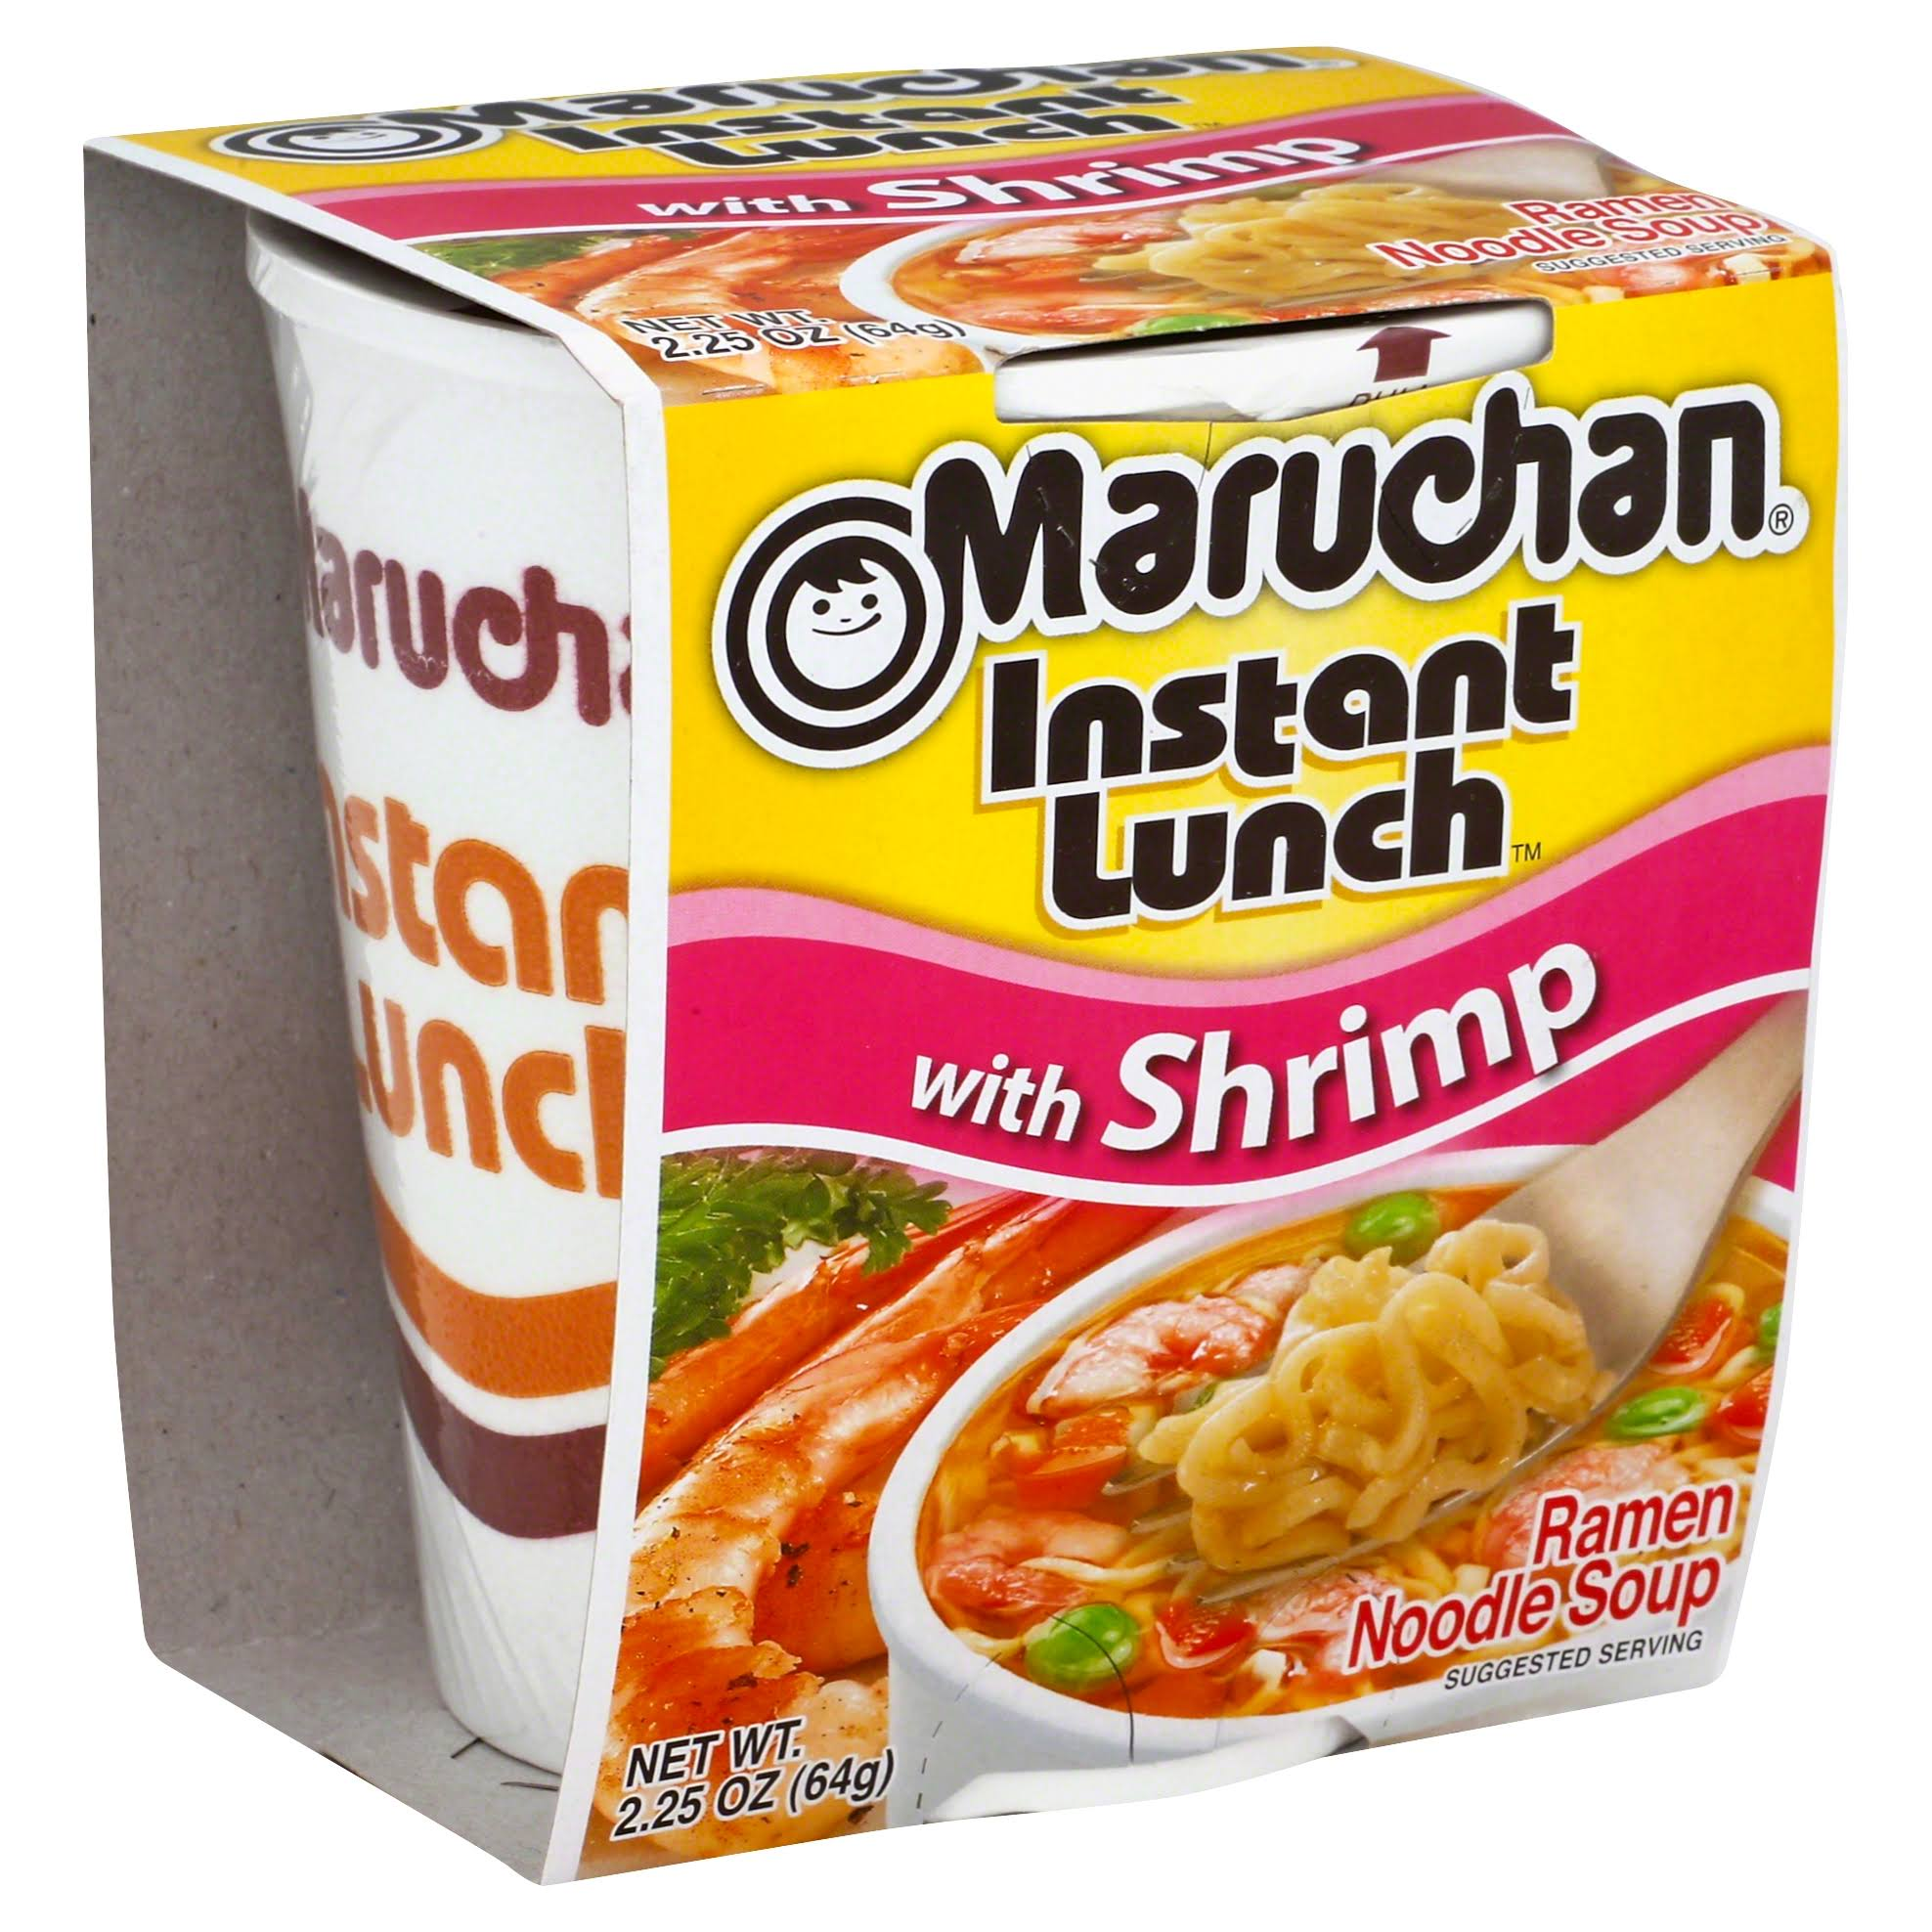 Maruchan Instant Lunch Ramen Noodle Soup - with Shrimp, 2.25oz